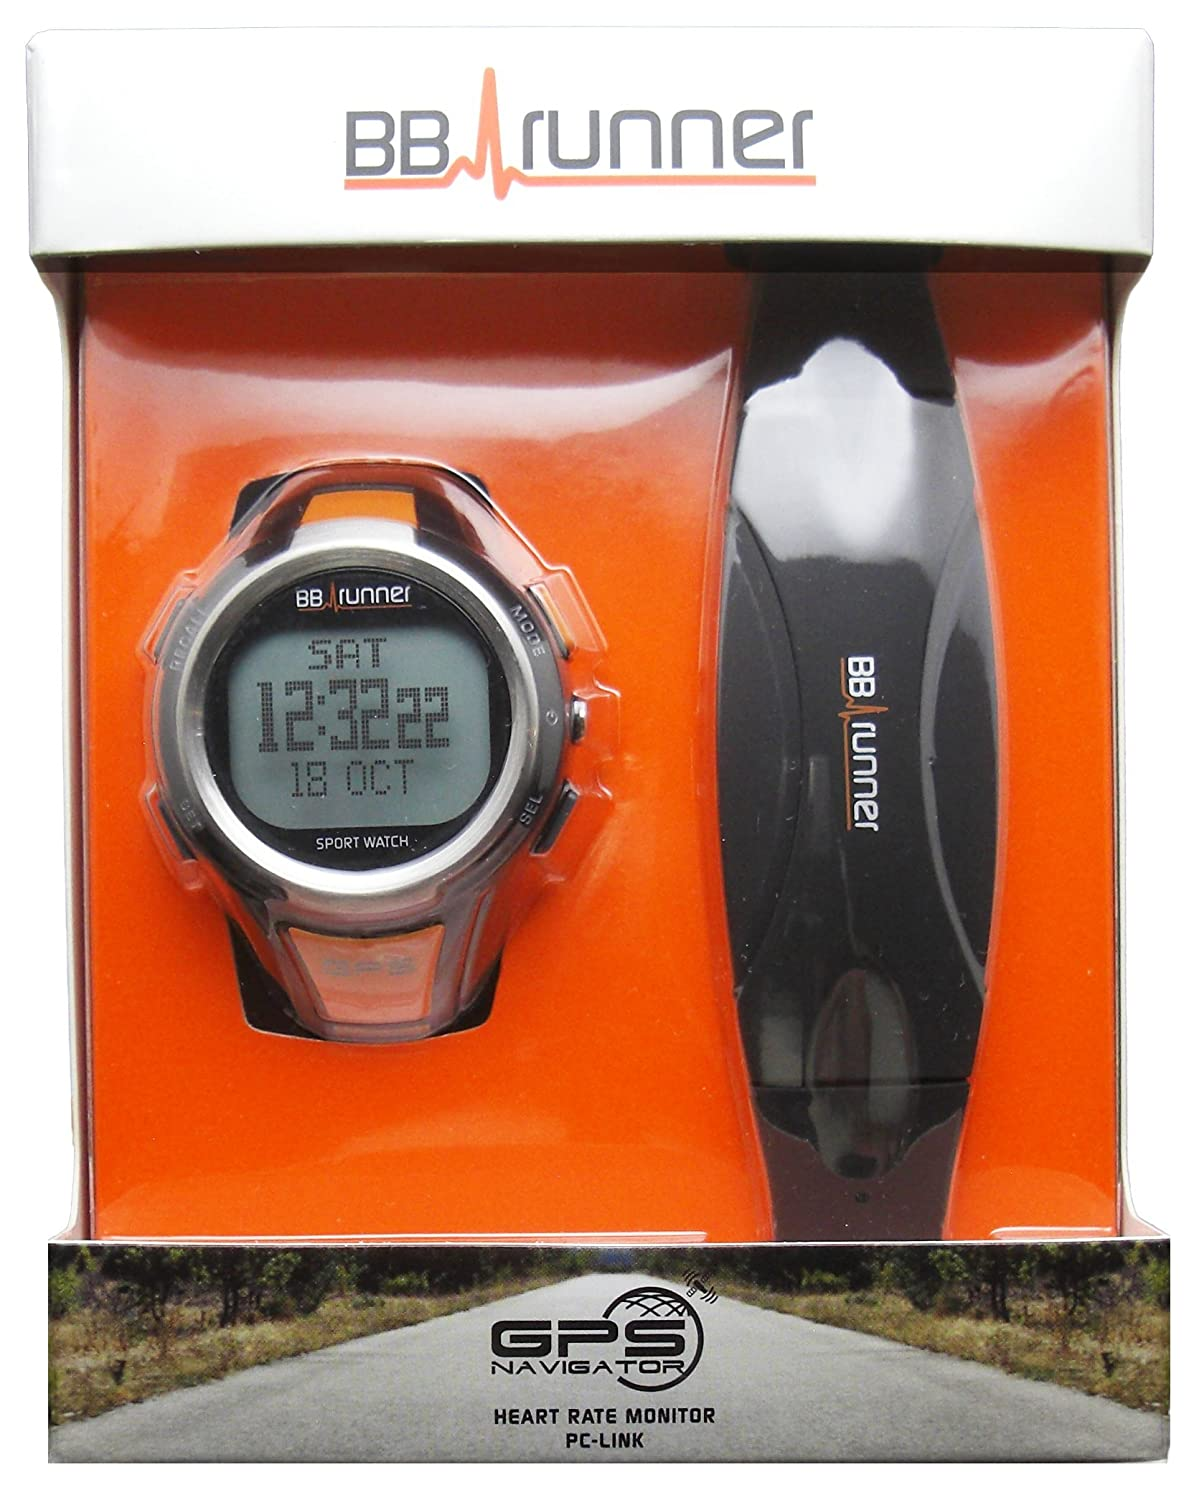 B BB-runner GPS Sport watch with Heart Rate Monitor